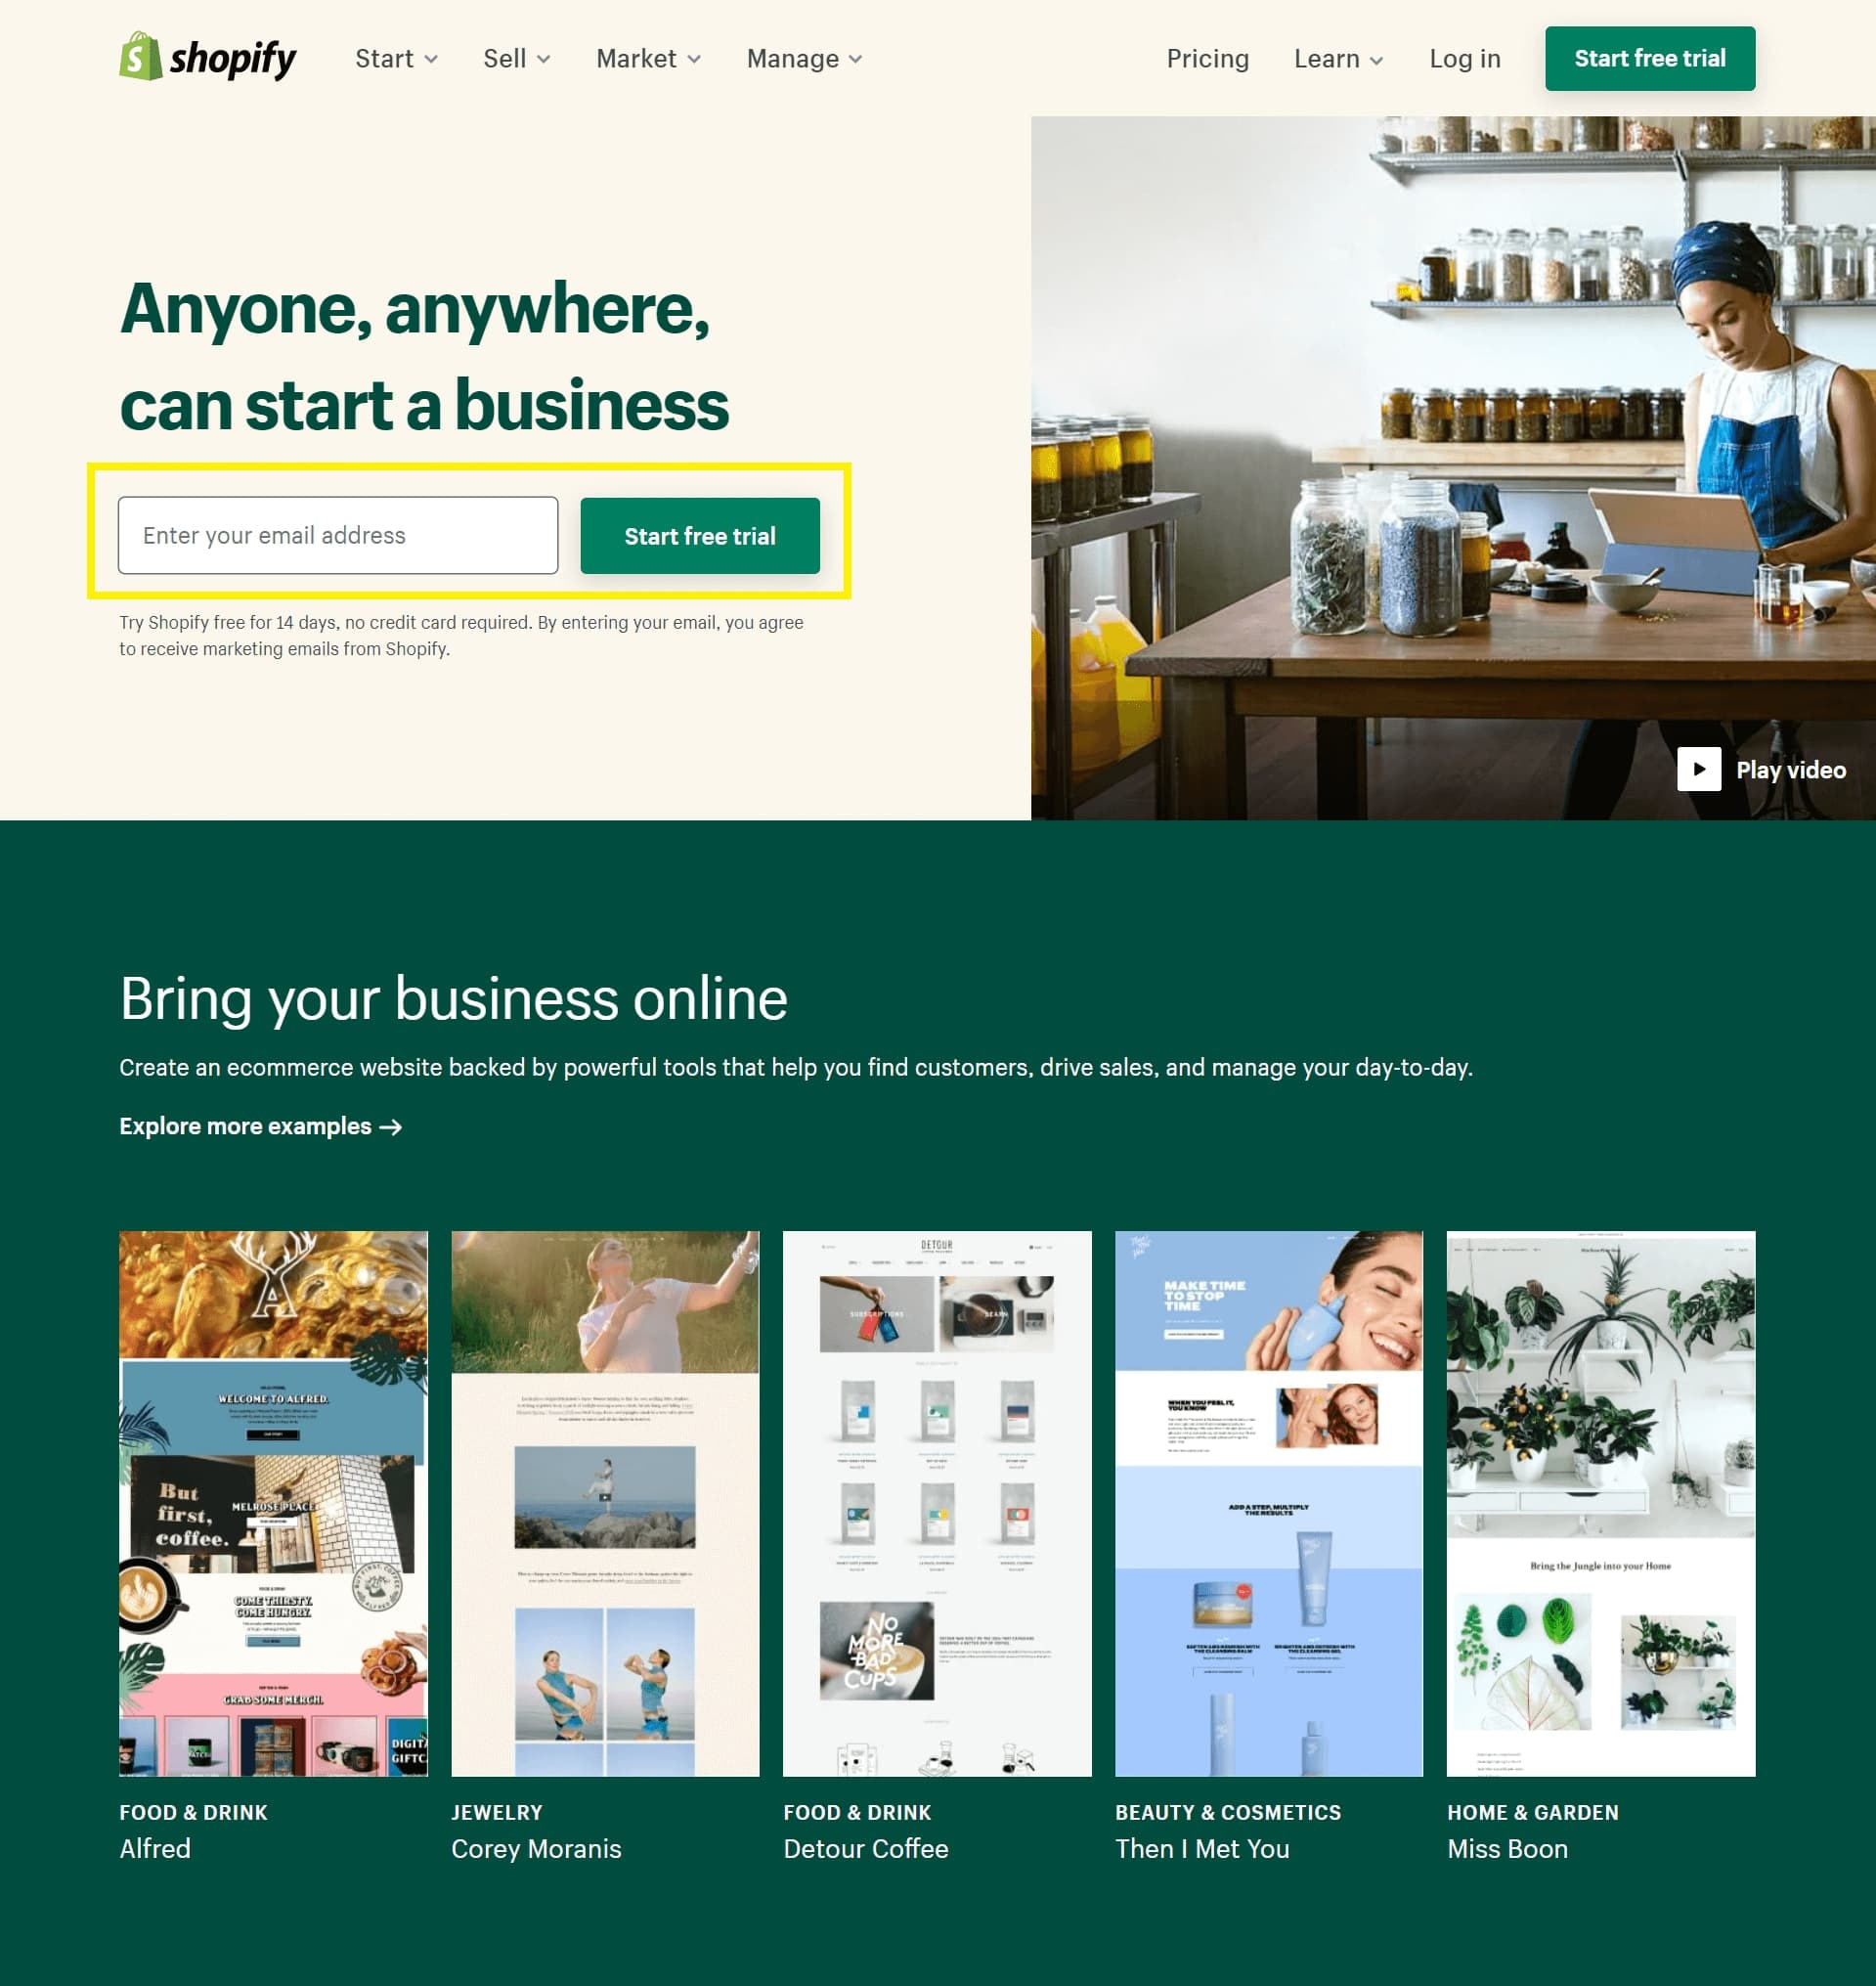 The Shopify homepage, offering a free trial.